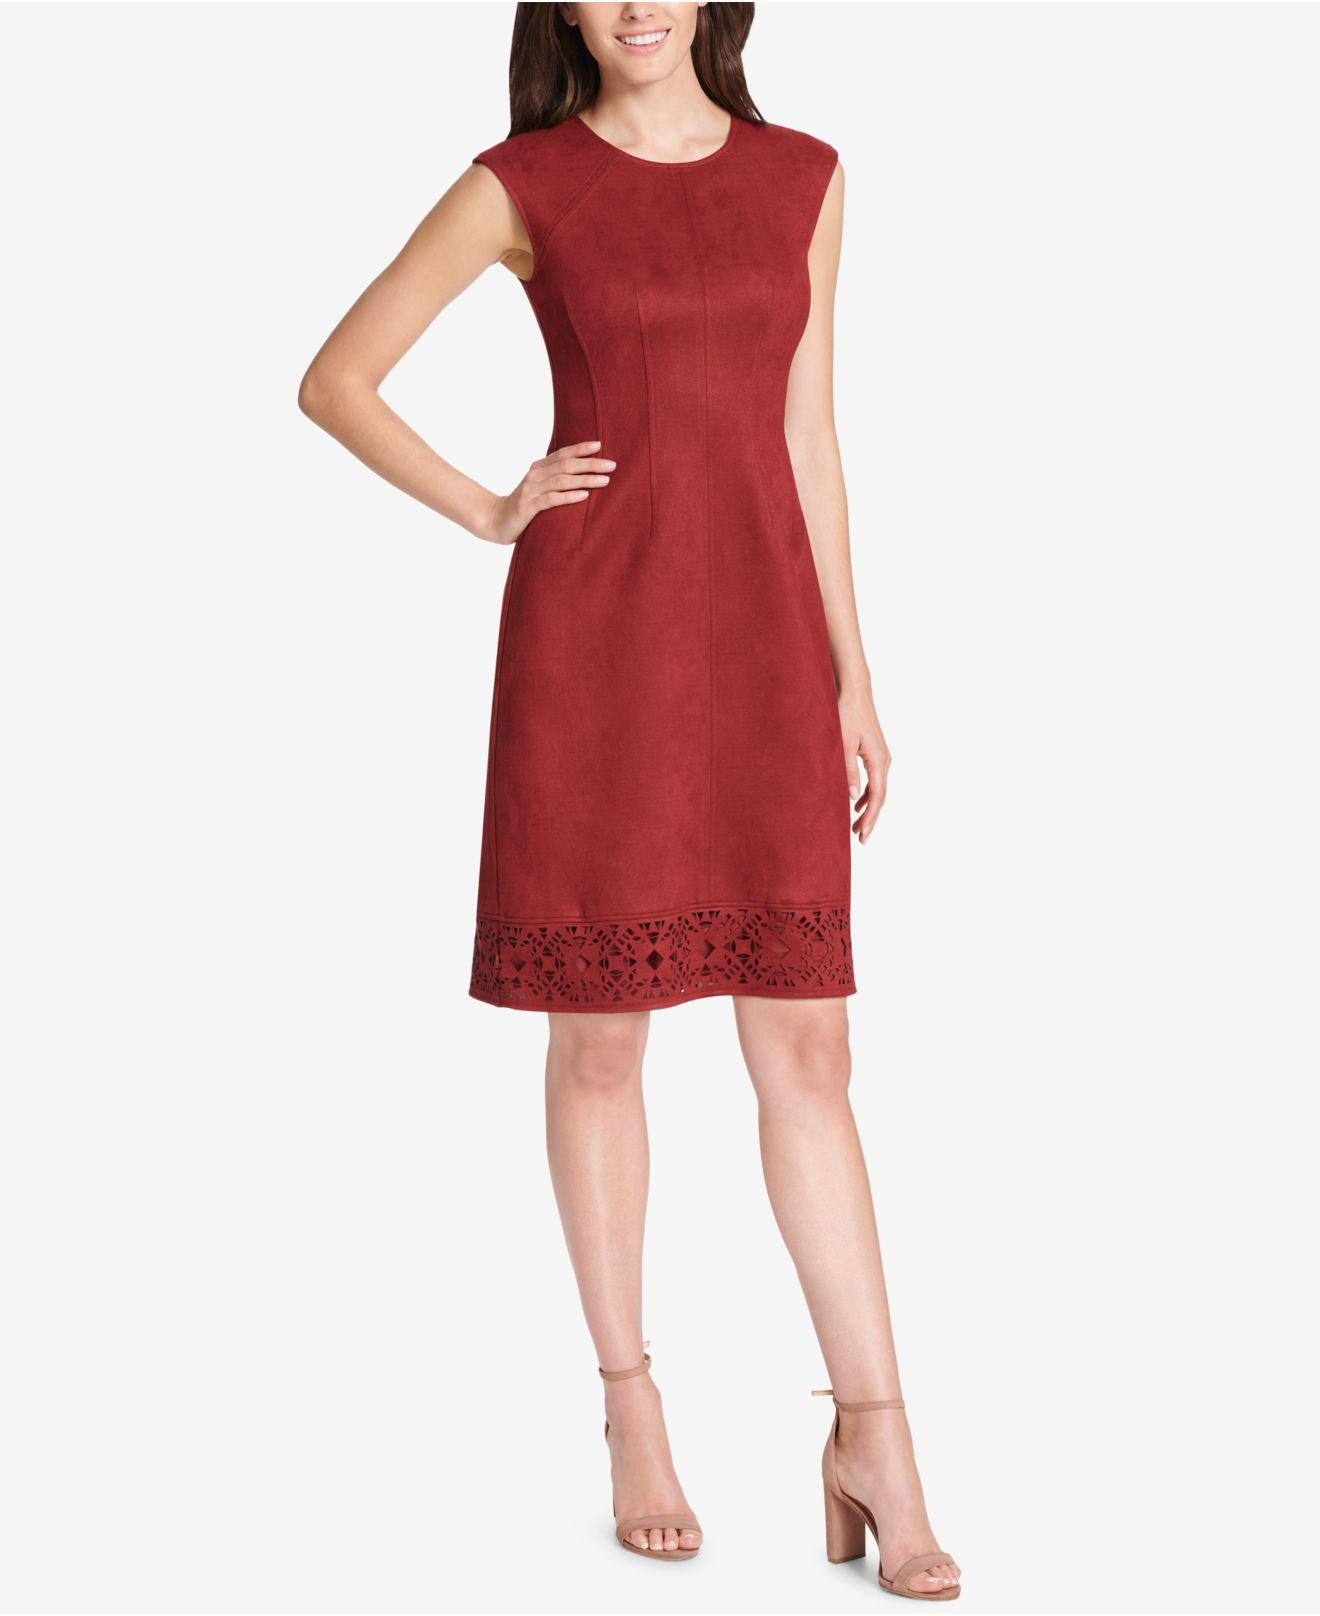 1e1b5537b0 Lyst - Vince Camuto Cutout Faux-suede Shift Dress in Red